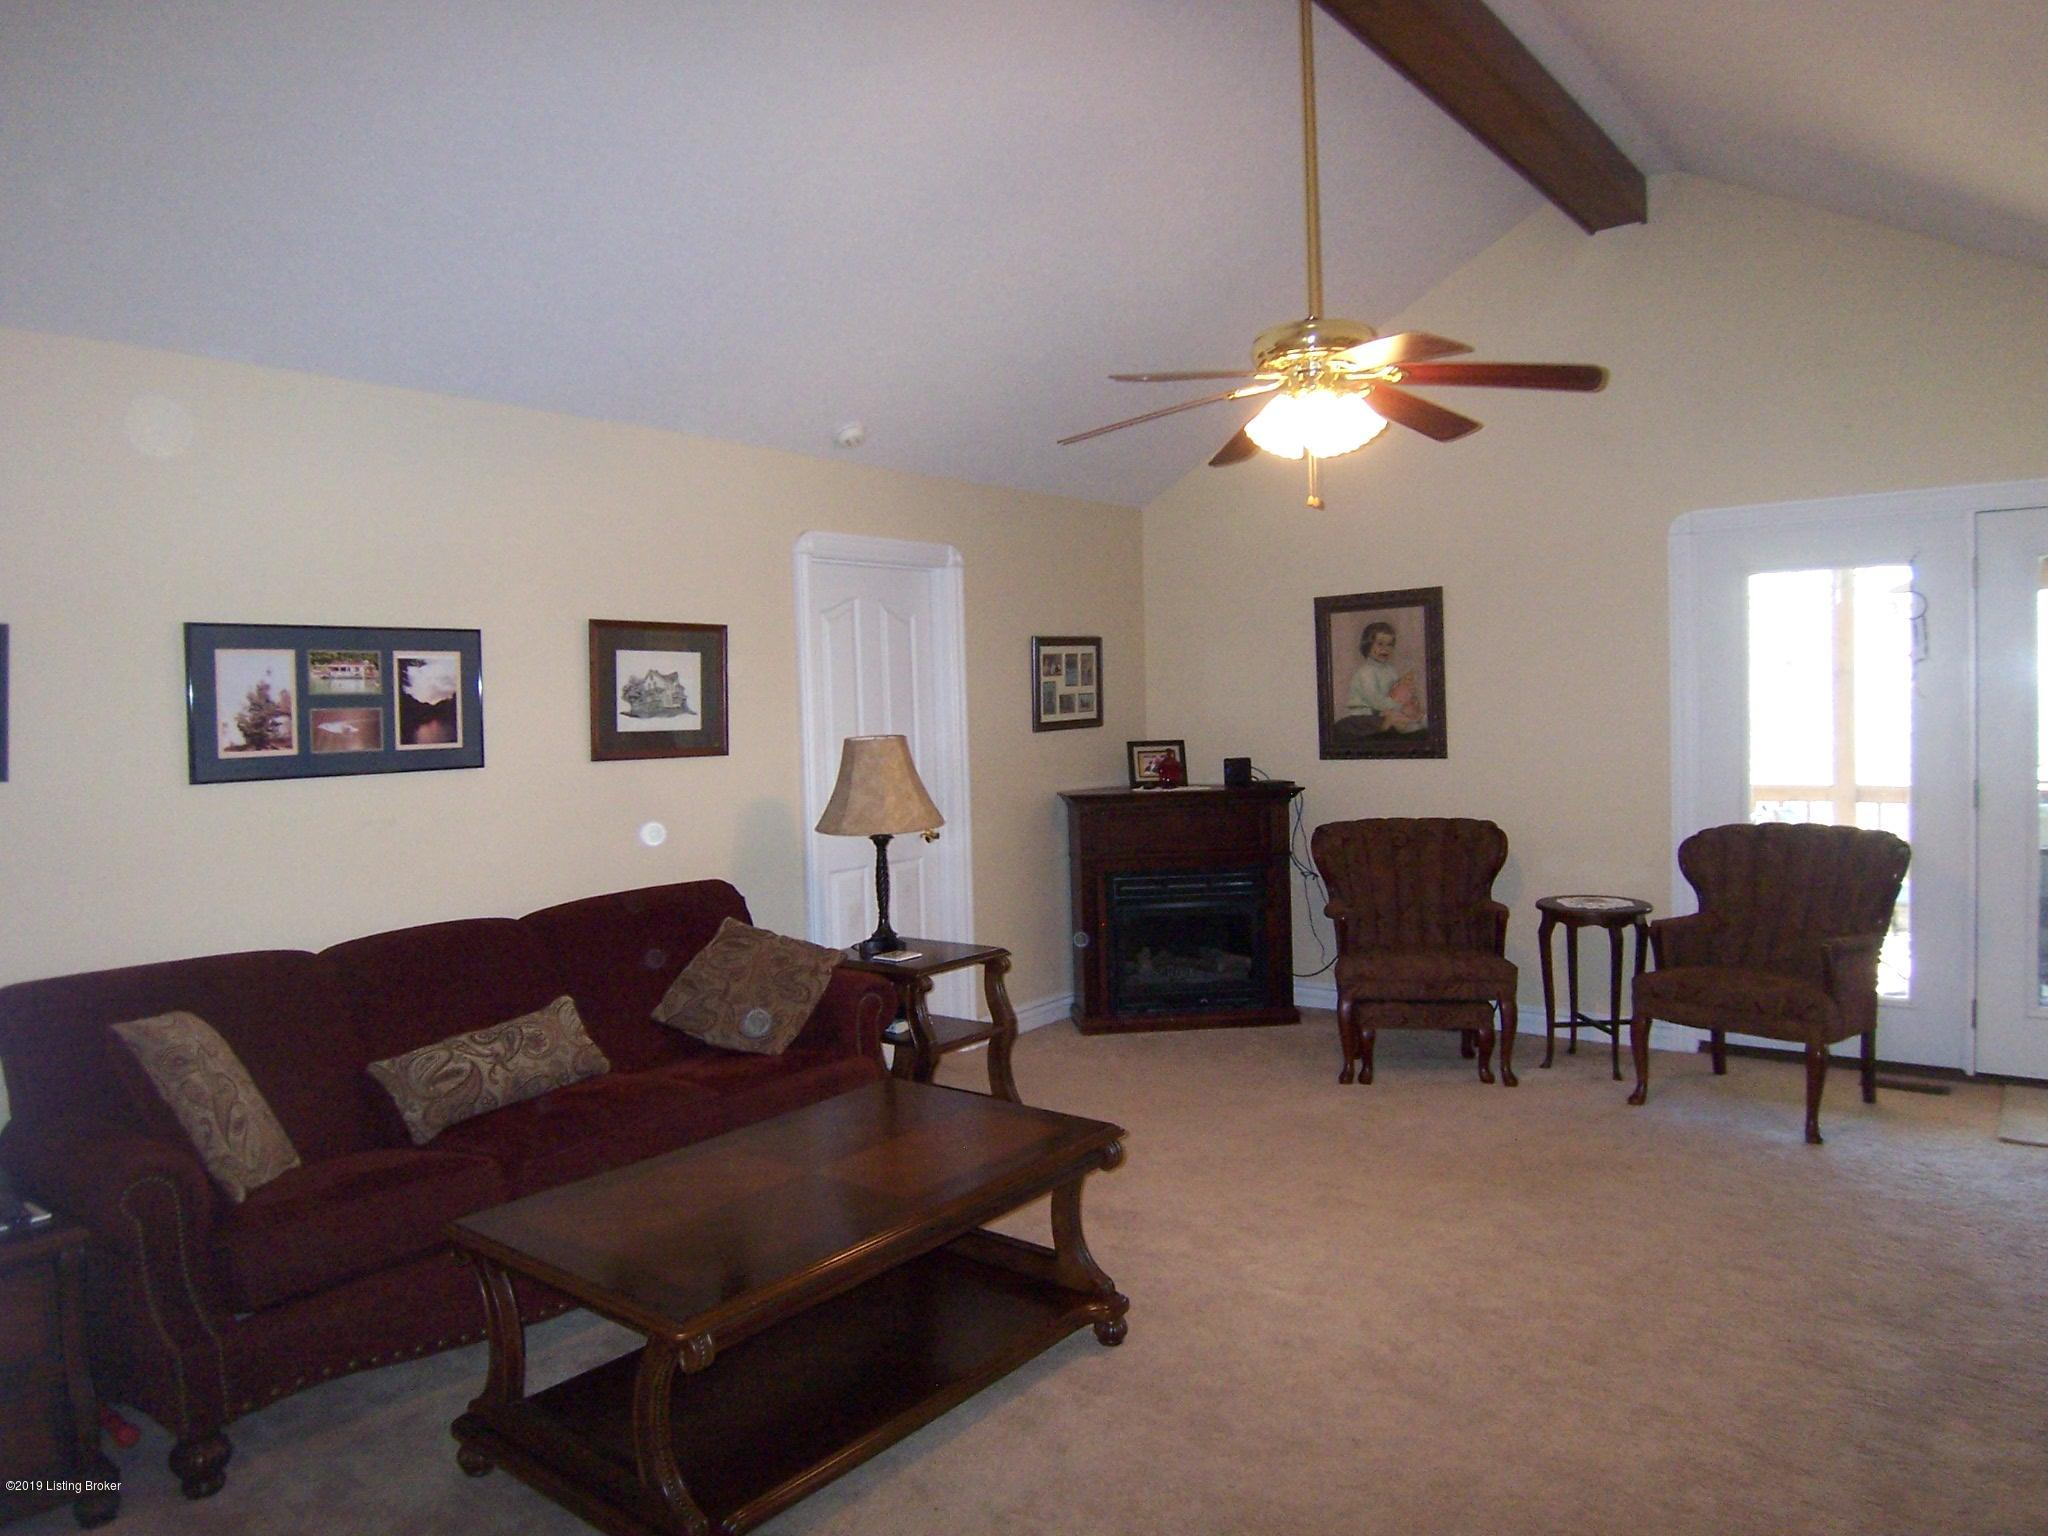 1009 High Pine Ct, Boston, Kentucky 40107, 4 Bedrooms Bedrooms, 6 Rooms Rooms,3 BathroomsBathrooms,Residential,For Sale,High Pine,1529177